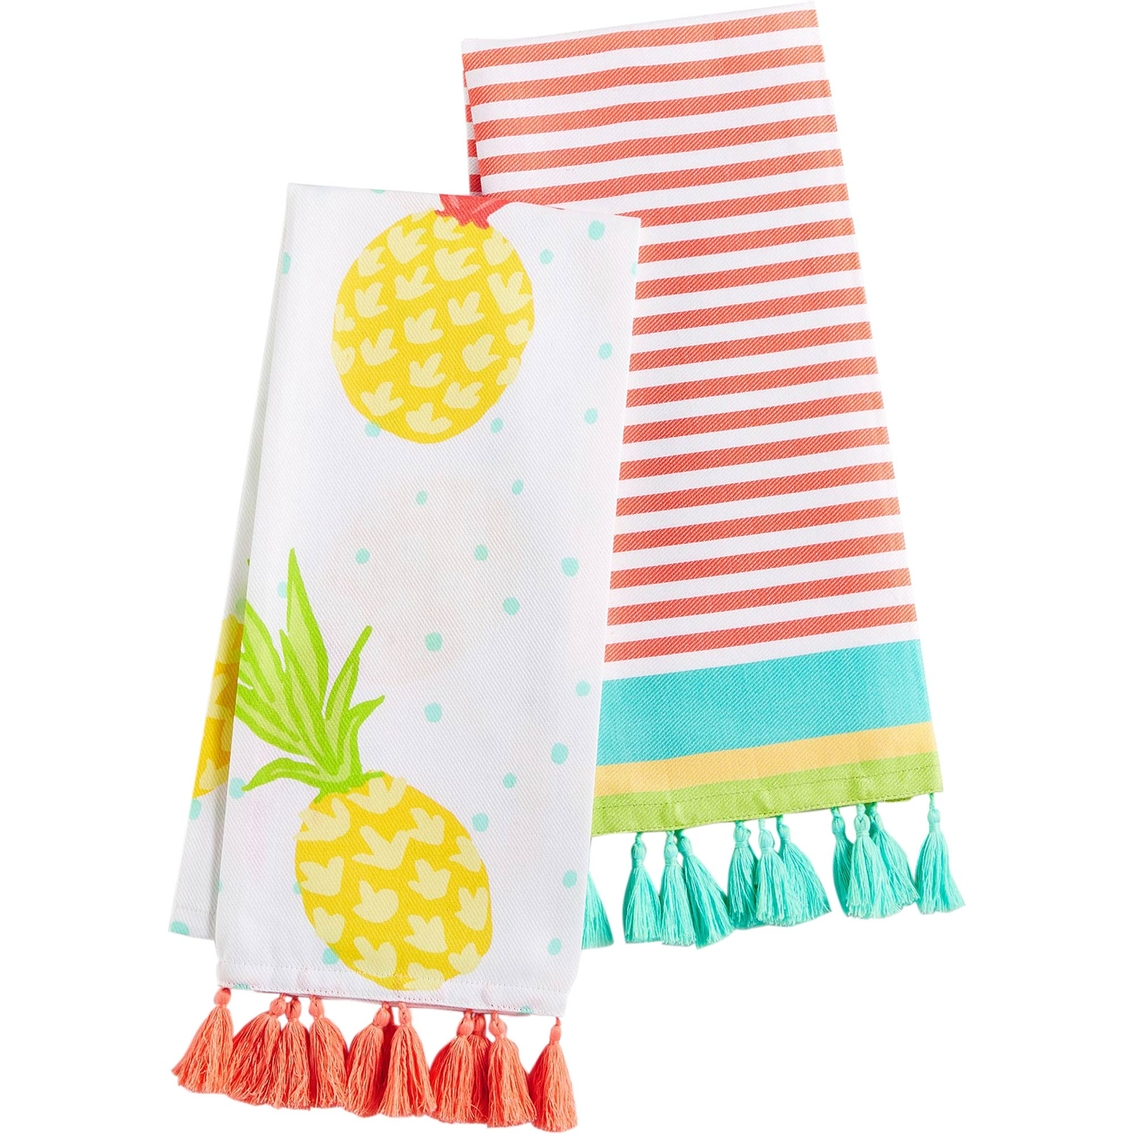 Martha Stewart Kitchen Towels: Martha Stewart Collection 2 Pc. Fiesta Kitchen Towel Set